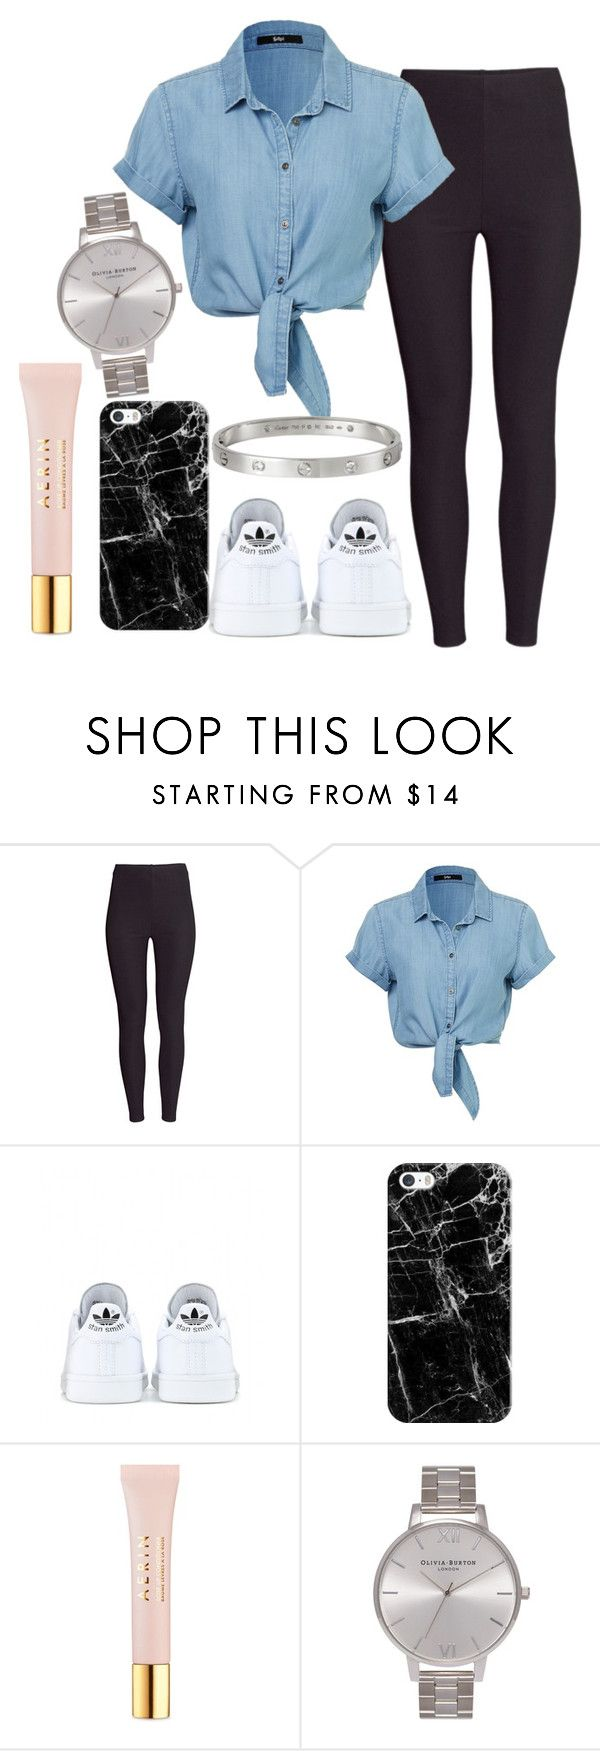 """""""Untitled#1352"""" by mihai-theodora ❤ liked on Polyvore featuring H&M, adidas, Casetify, AERIN, Olivia Burton, Cartier, women's clothing, women, female and woman"""